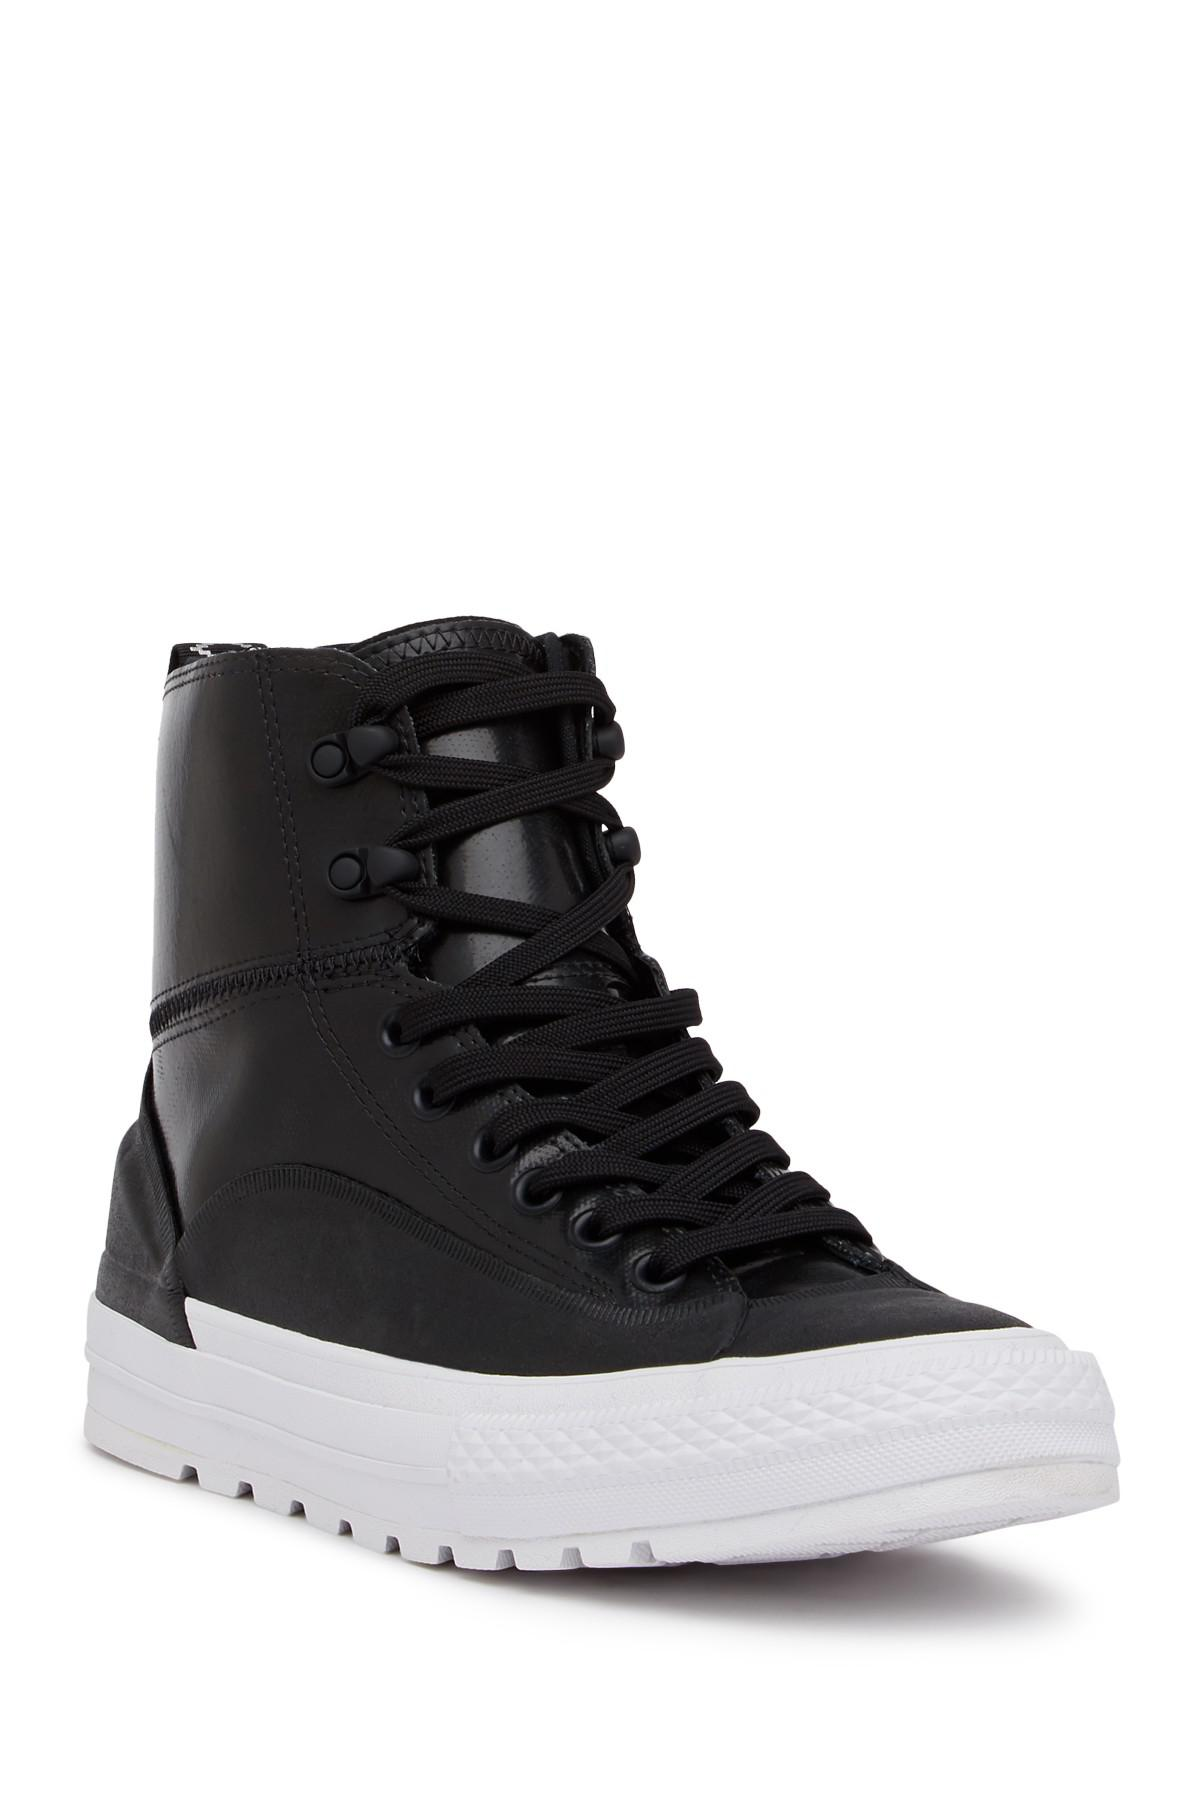 8c9d1277964e Gallery. Previously sold at  Nordstrom Rack · Women s Converse Chuck Taylor  Women s Cap Toe Sneakers ...